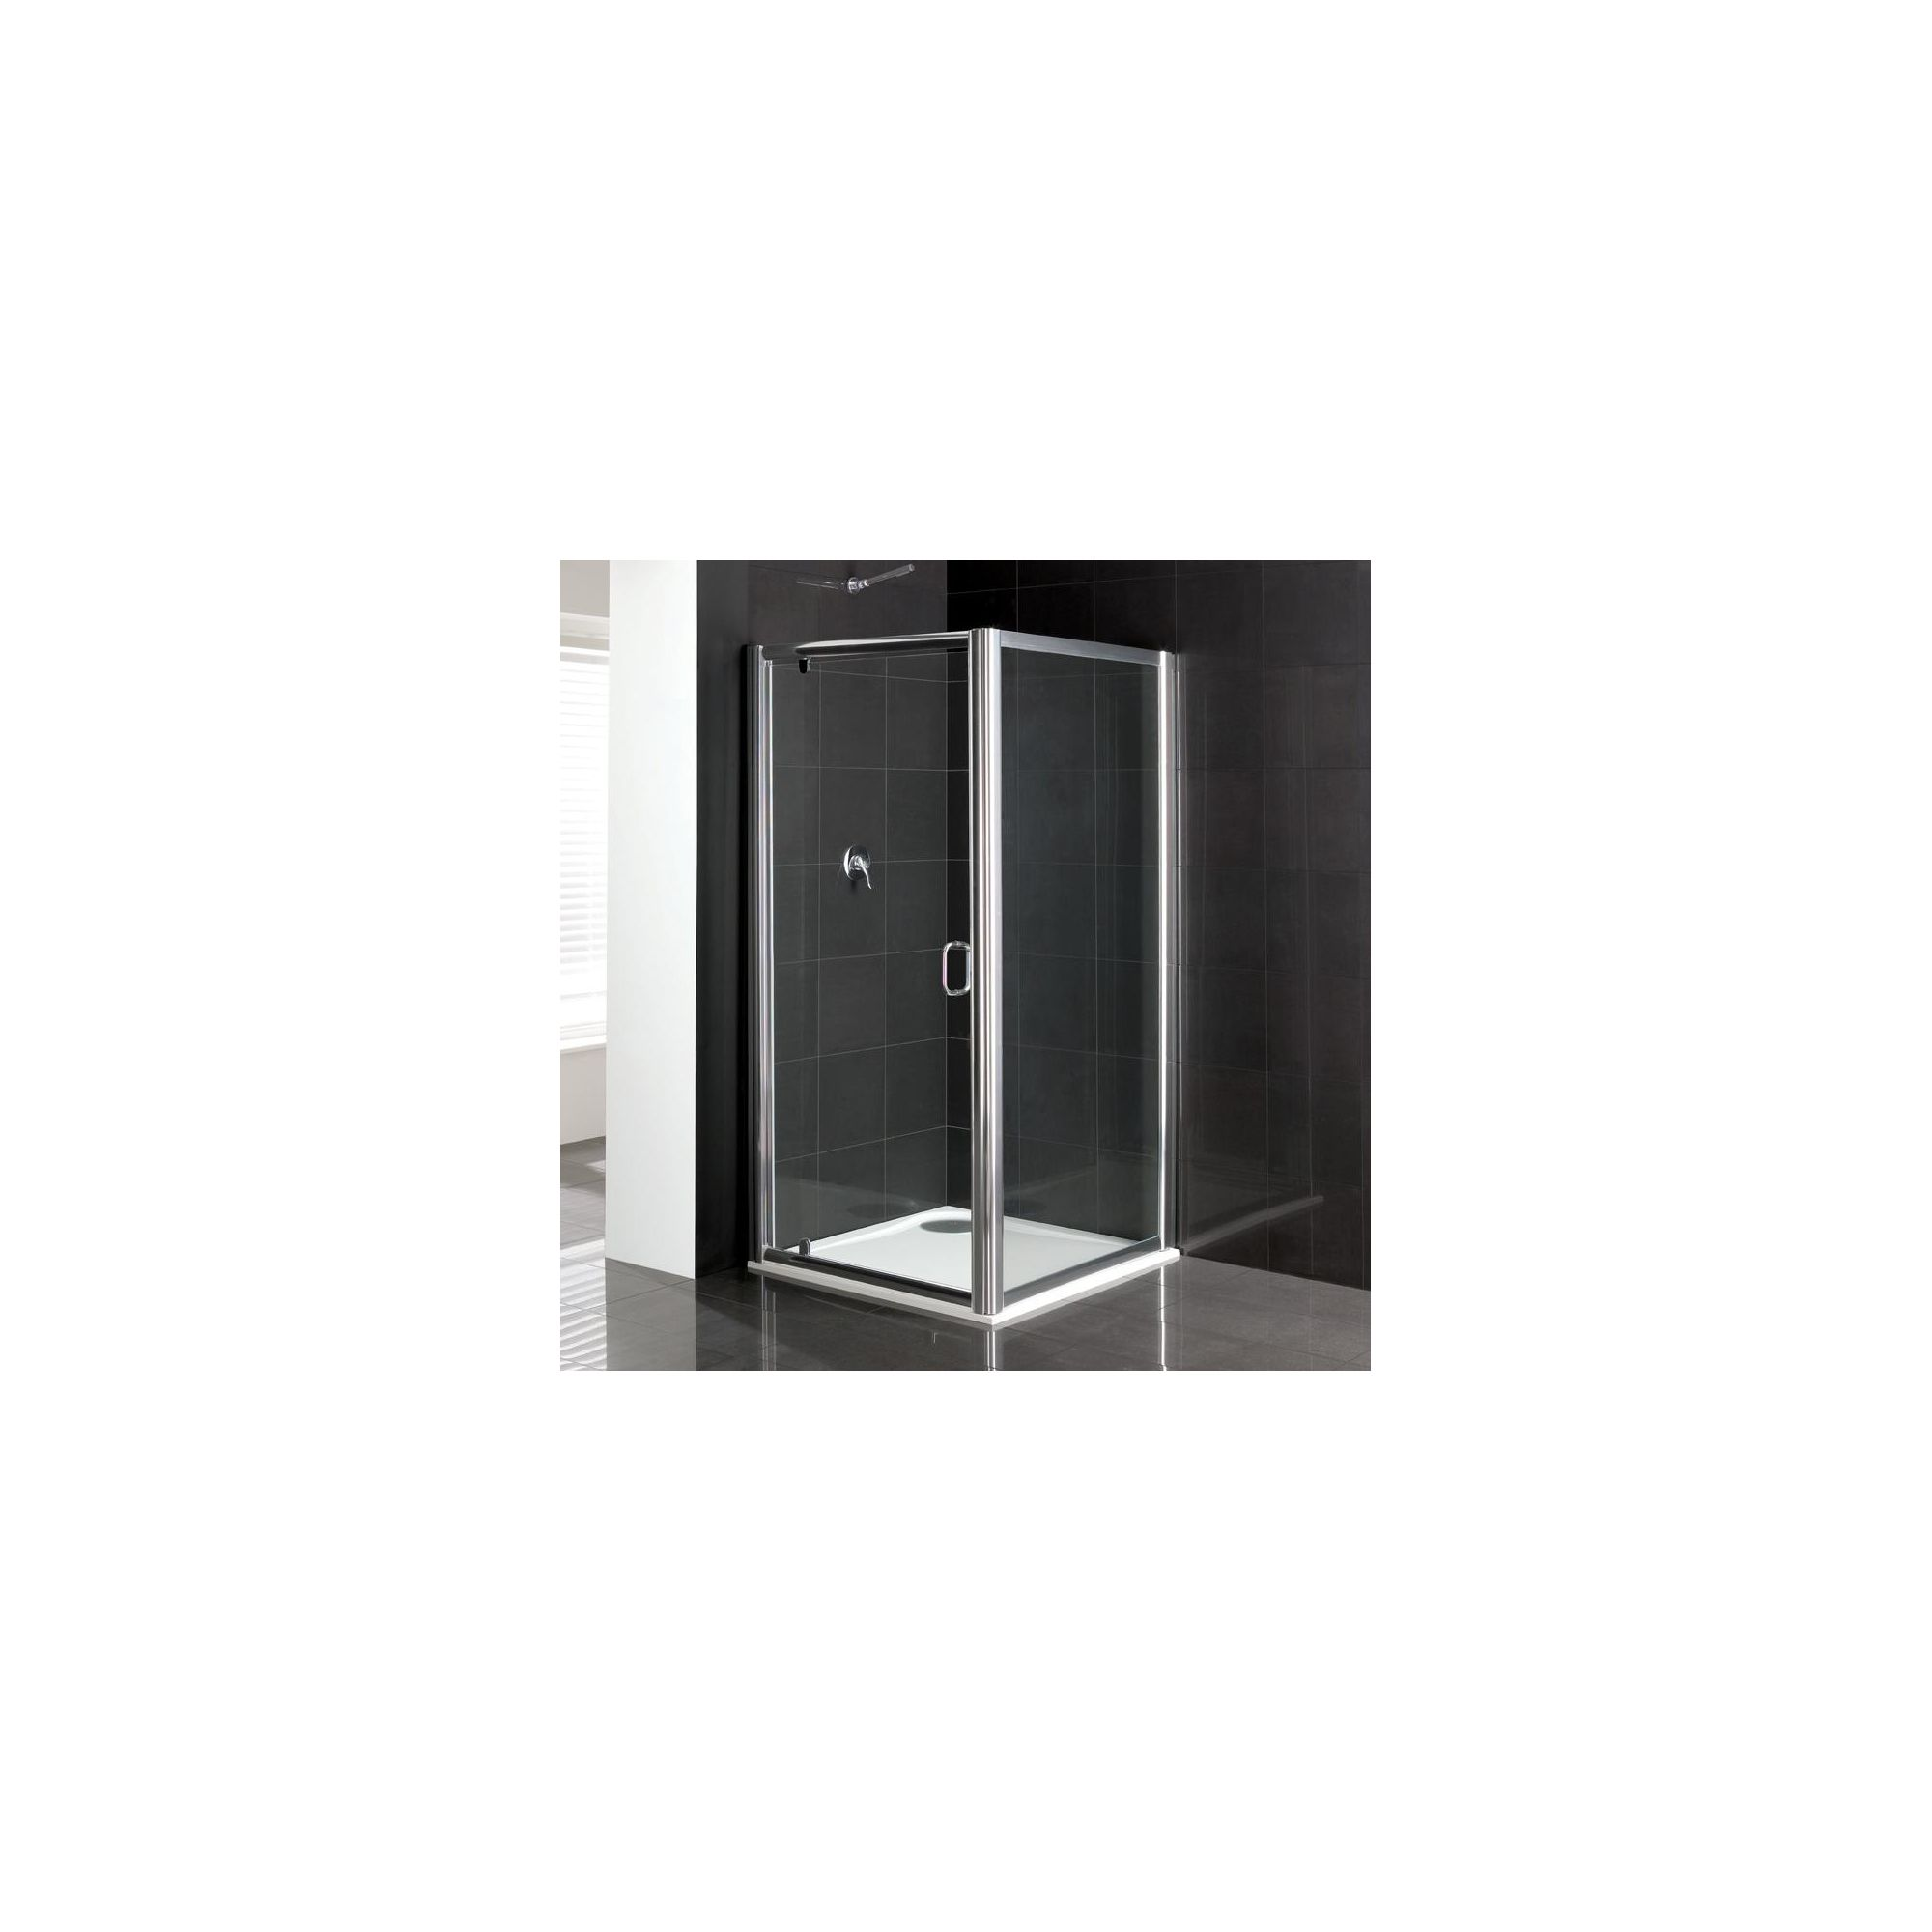 Duchy Elite Silver Pivot Door Shower Enclosure, 800mm x 700mm, Standard Tray, 6mm Glass at Tesco Direct